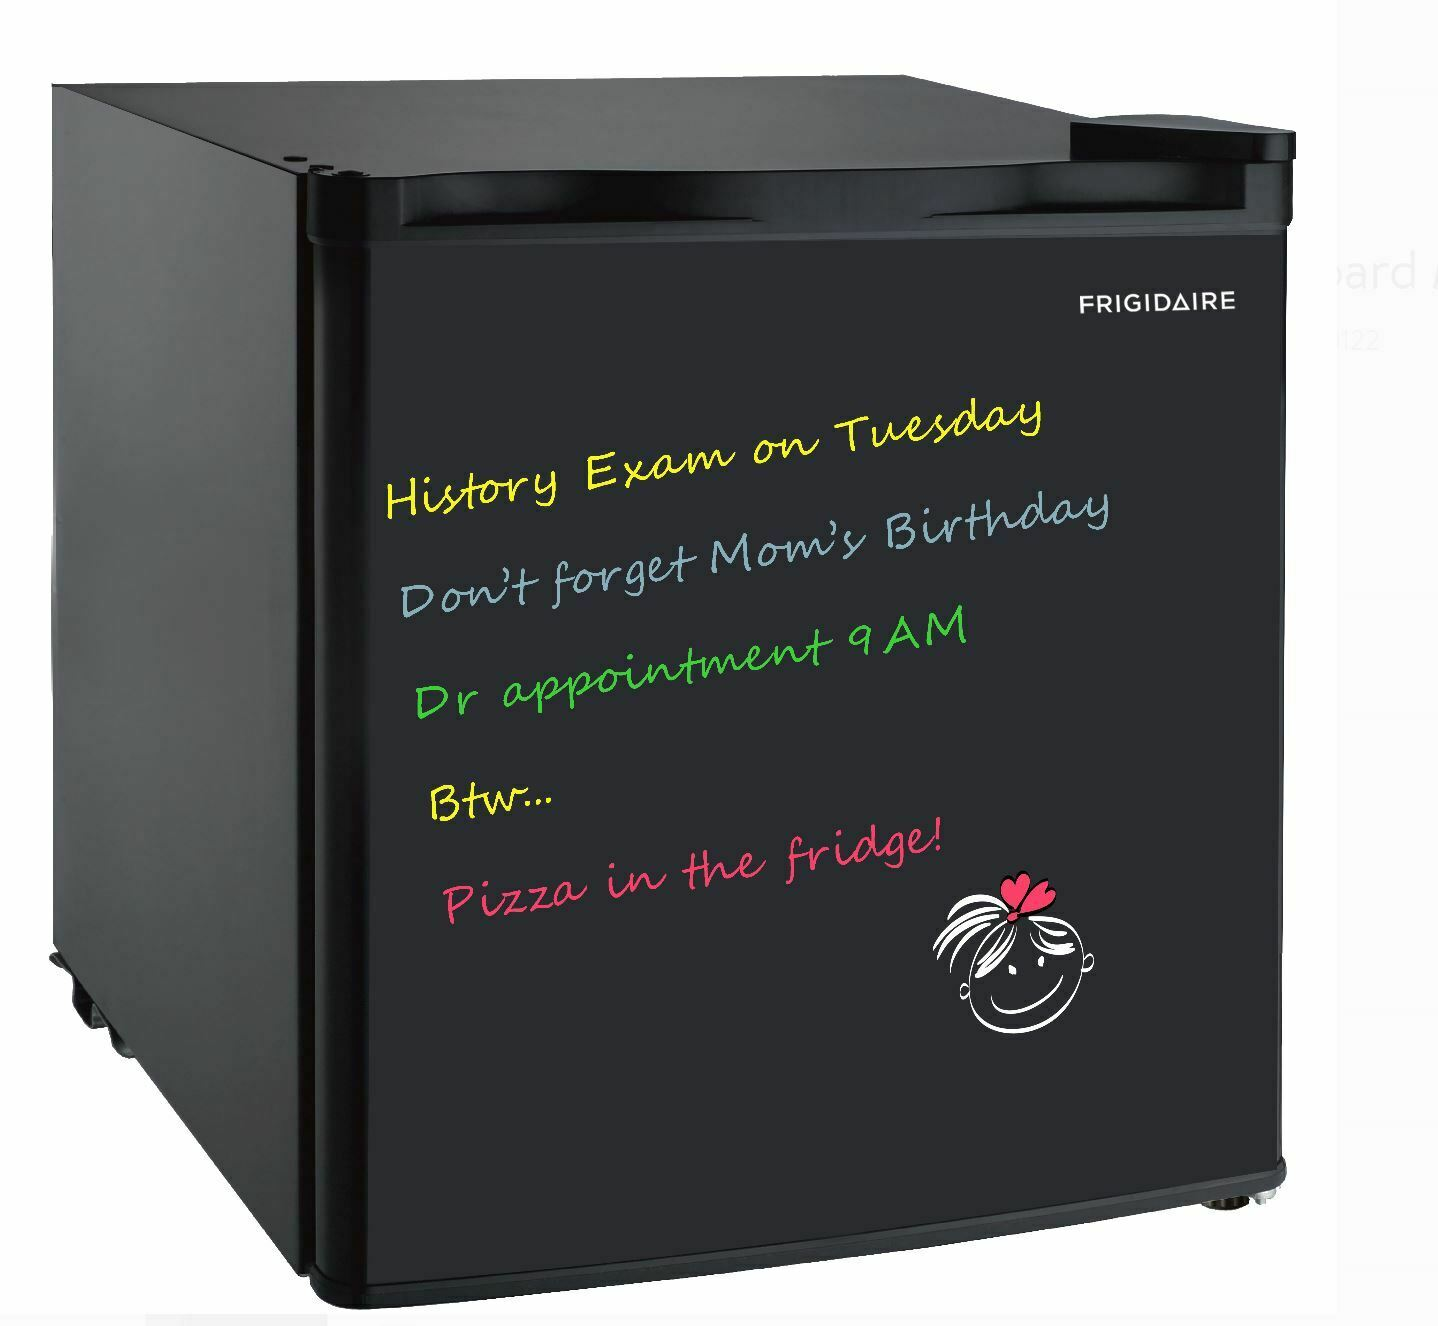 Frigidaire EFR176-Black 1.6 Cu Ft Retro Fridge, Medium, Blac